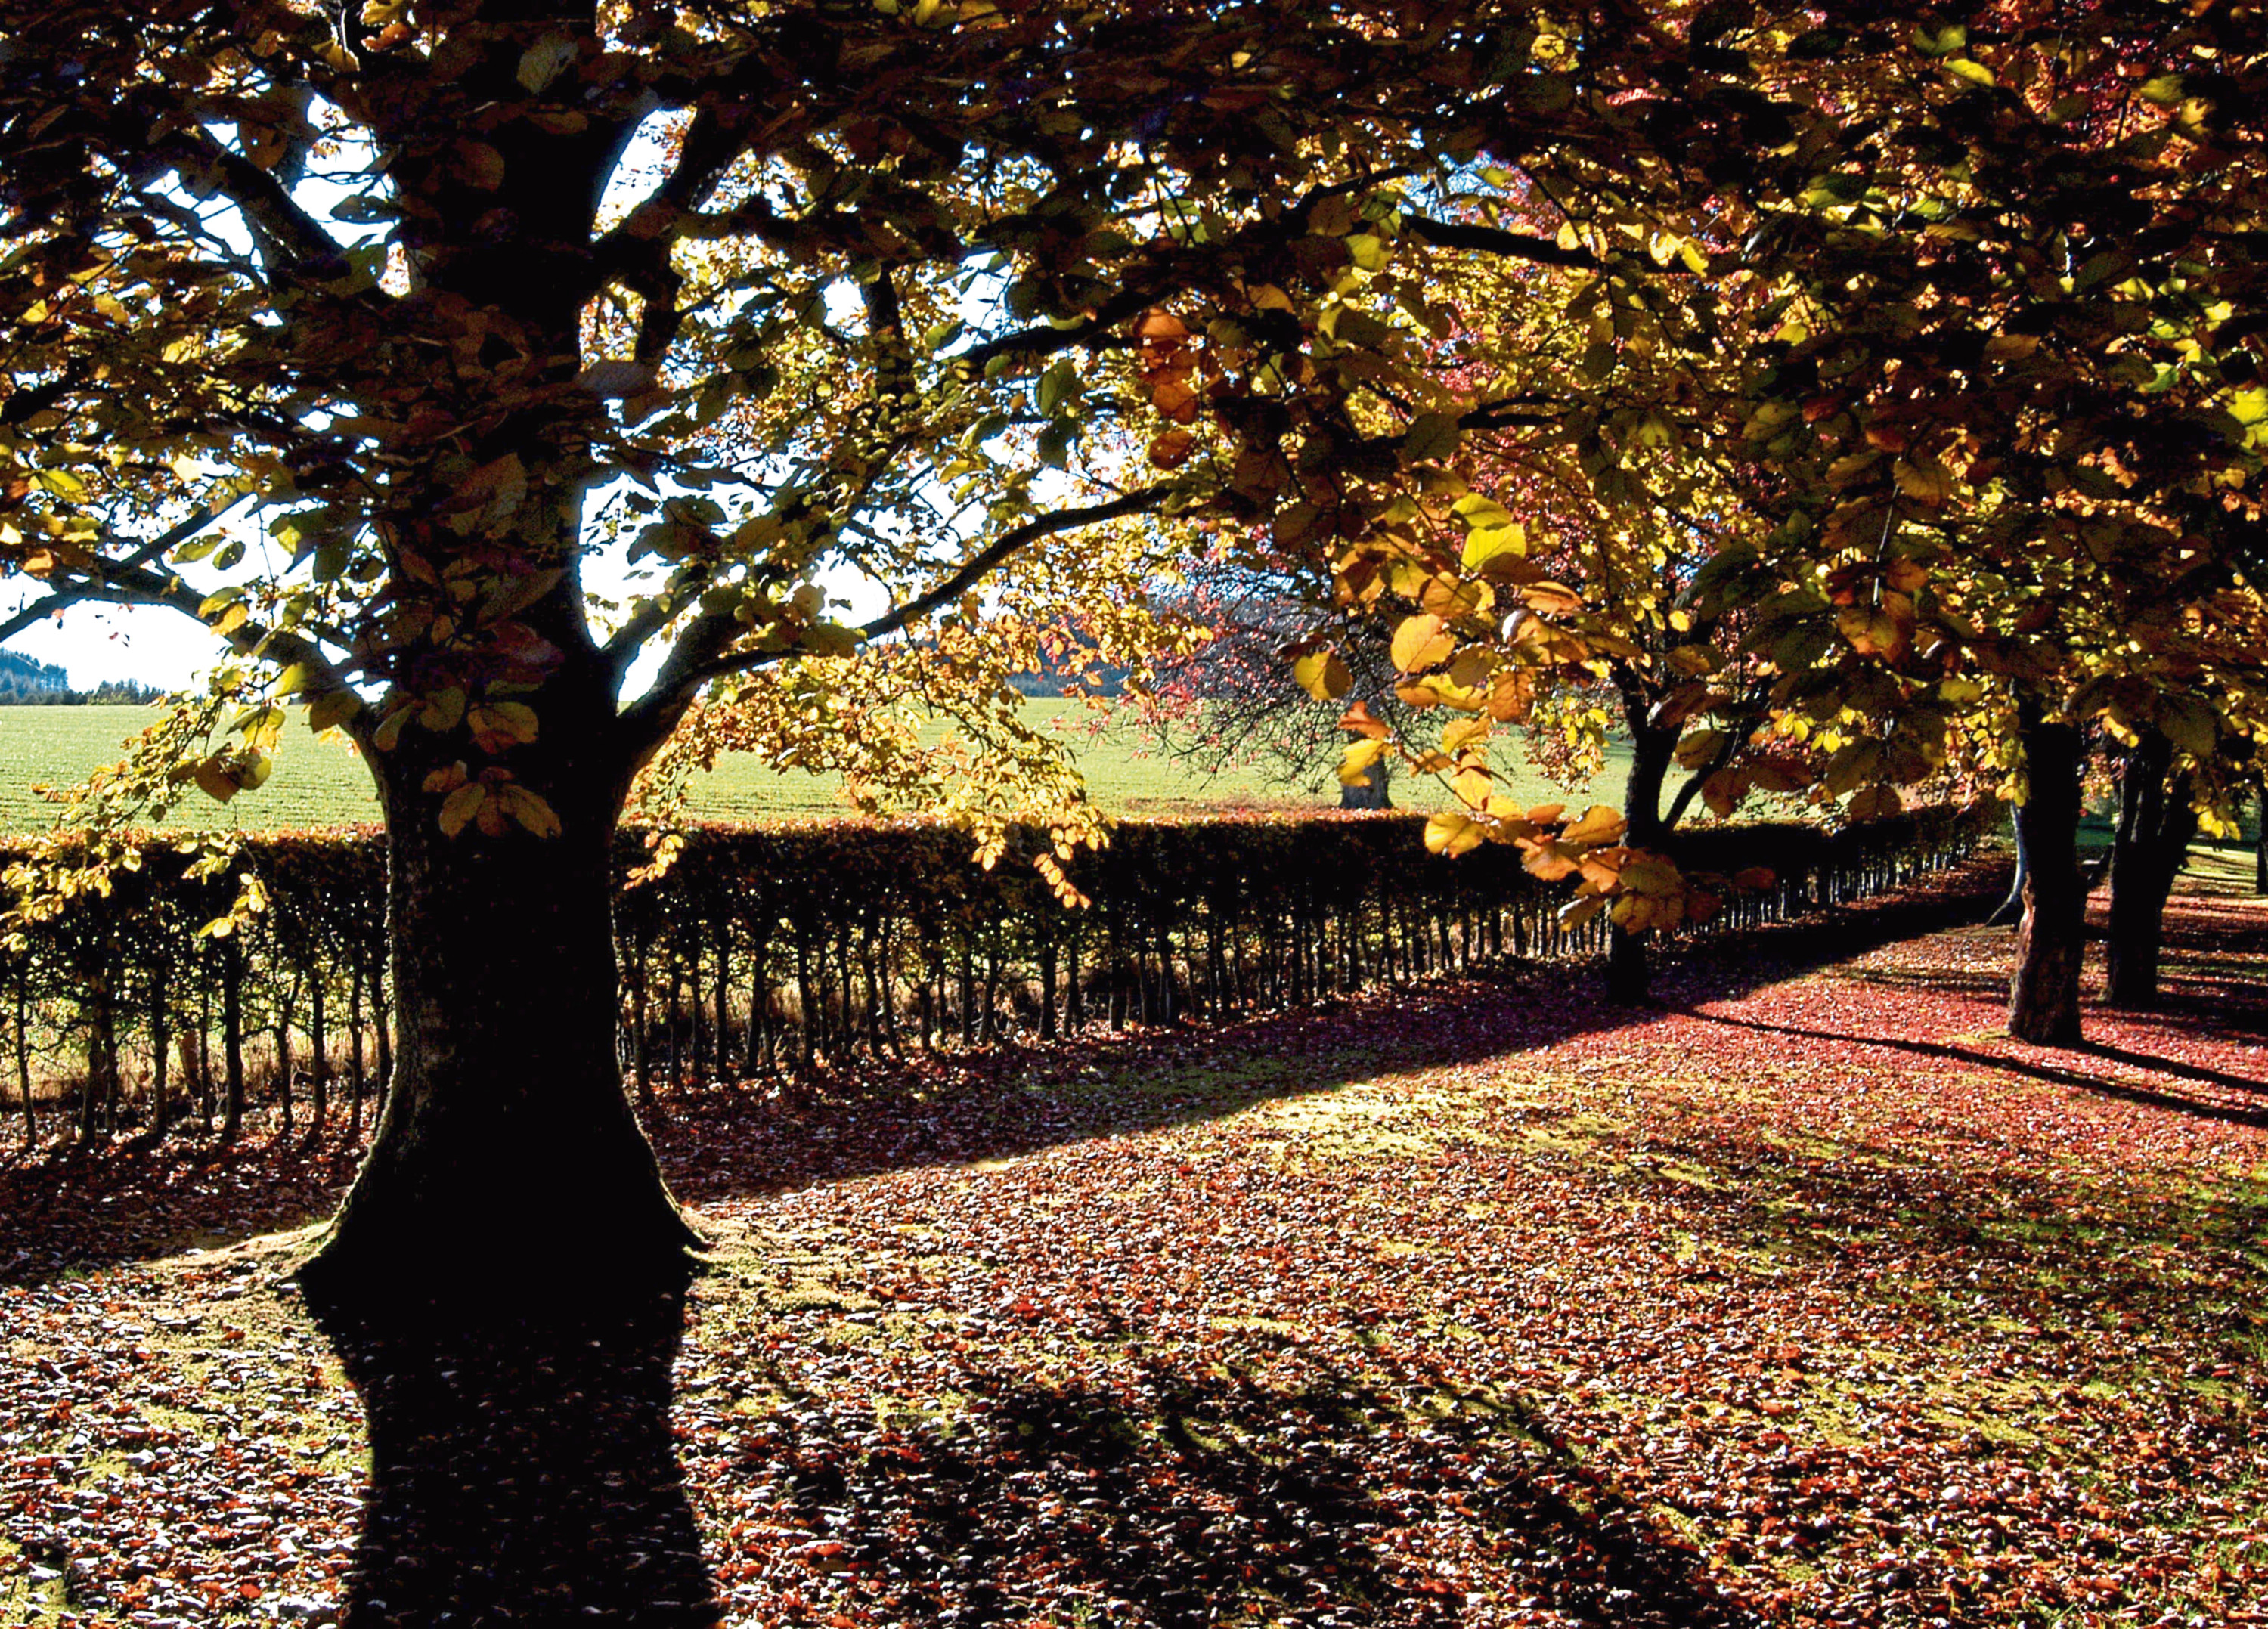 Landowners across Aberdeenshire are being encouraged to inspect trees